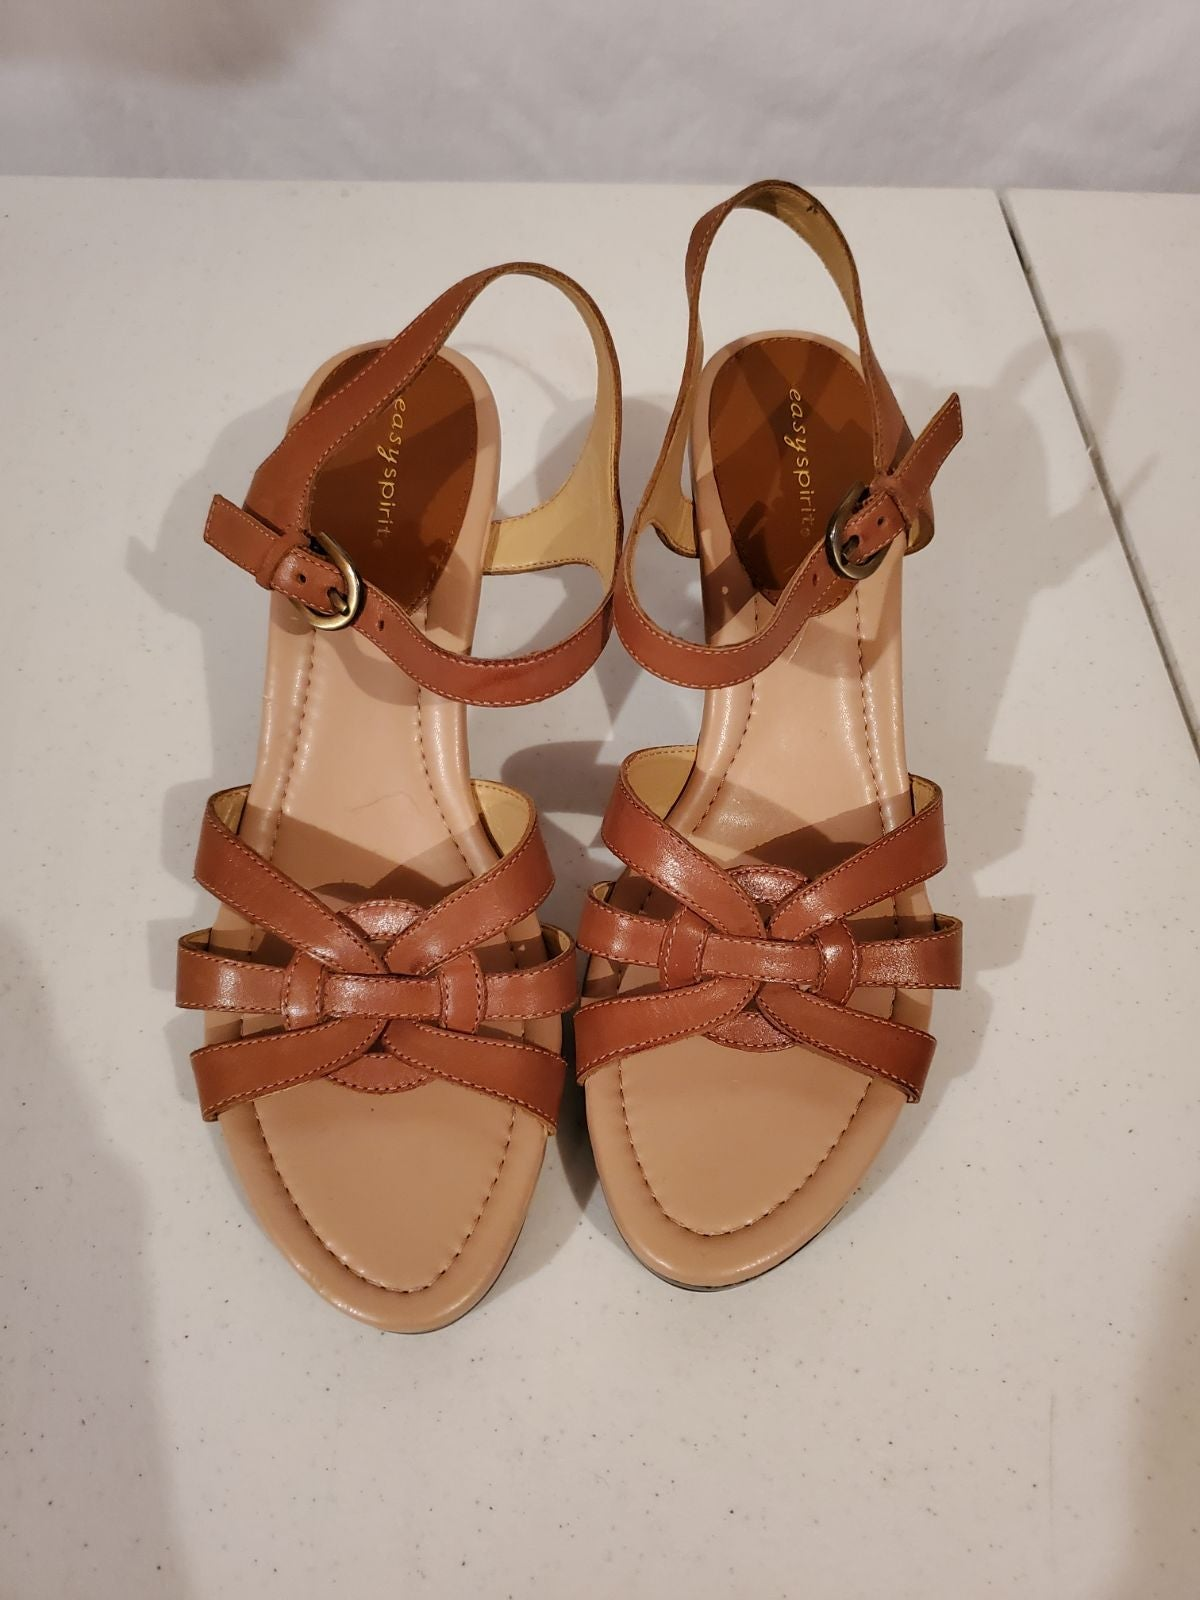 Easy spirit wedge sandals women's size 1